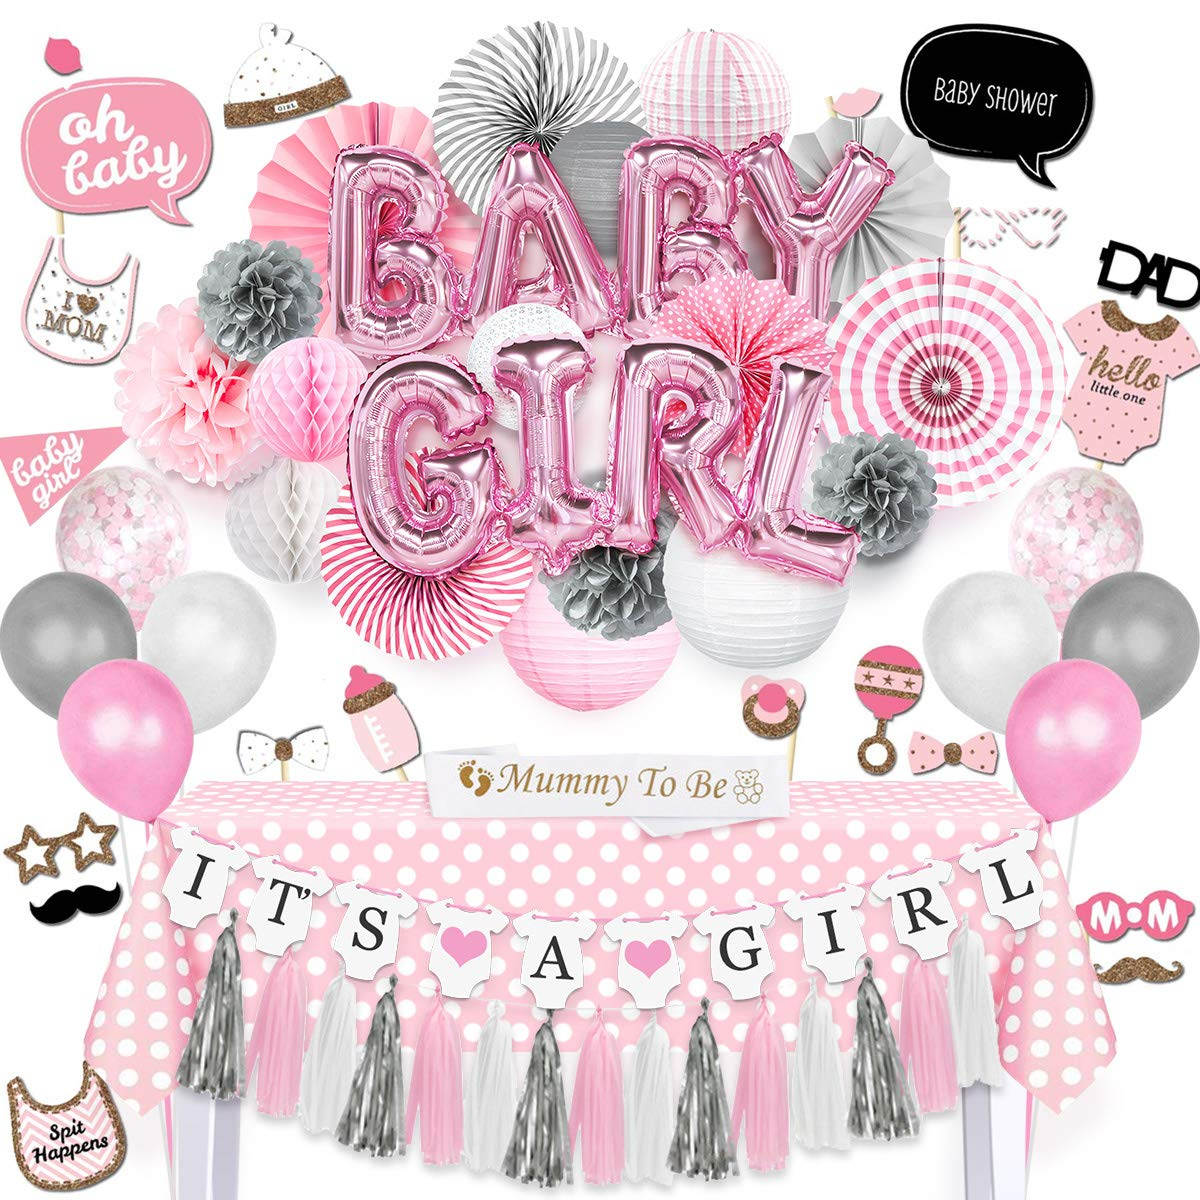 NICROLANDEE Baby Girl Baby Shower Decorations Princess Pink Baby Girl Balloon Paper Lanterns Tissue Poms Party Fans Rectangle Tablecloth Mommy to Be Sash Photo Booth Props for Baby Shower Birthday